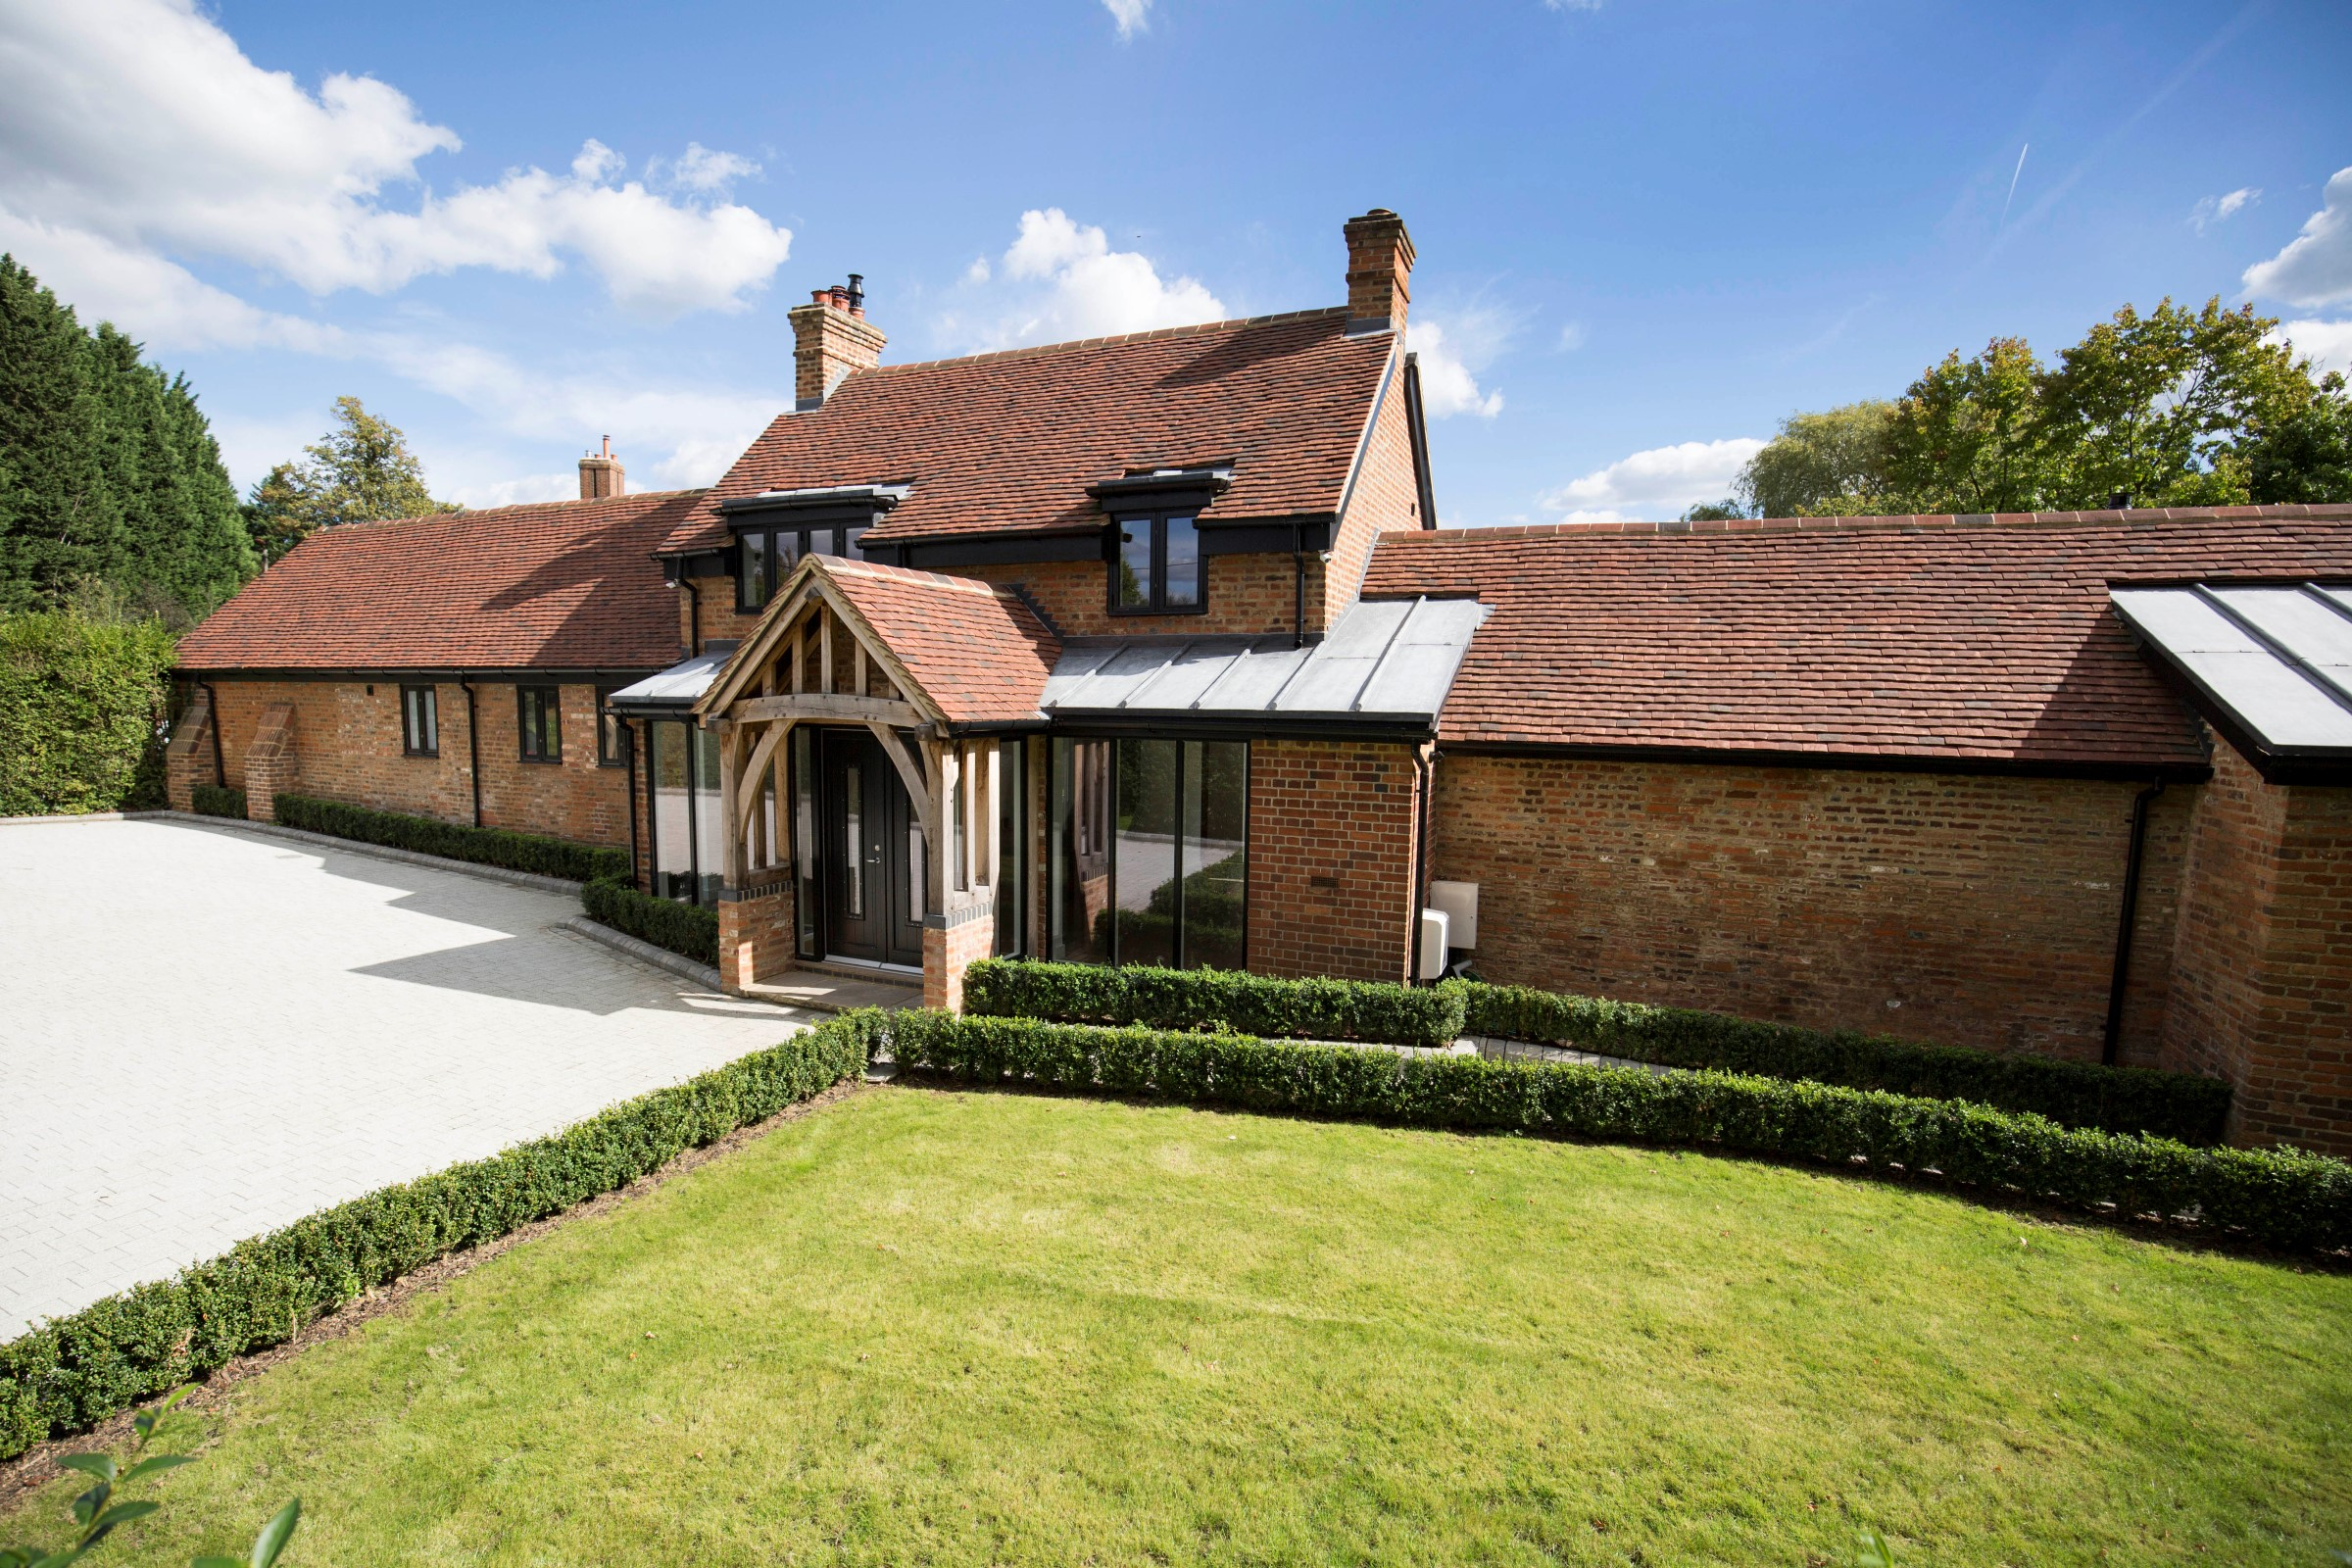 独户住宅 为 销售 在 Country Cottage in Surrey Bagshot Road Chobham, 英格兰, GU248SJ 英国